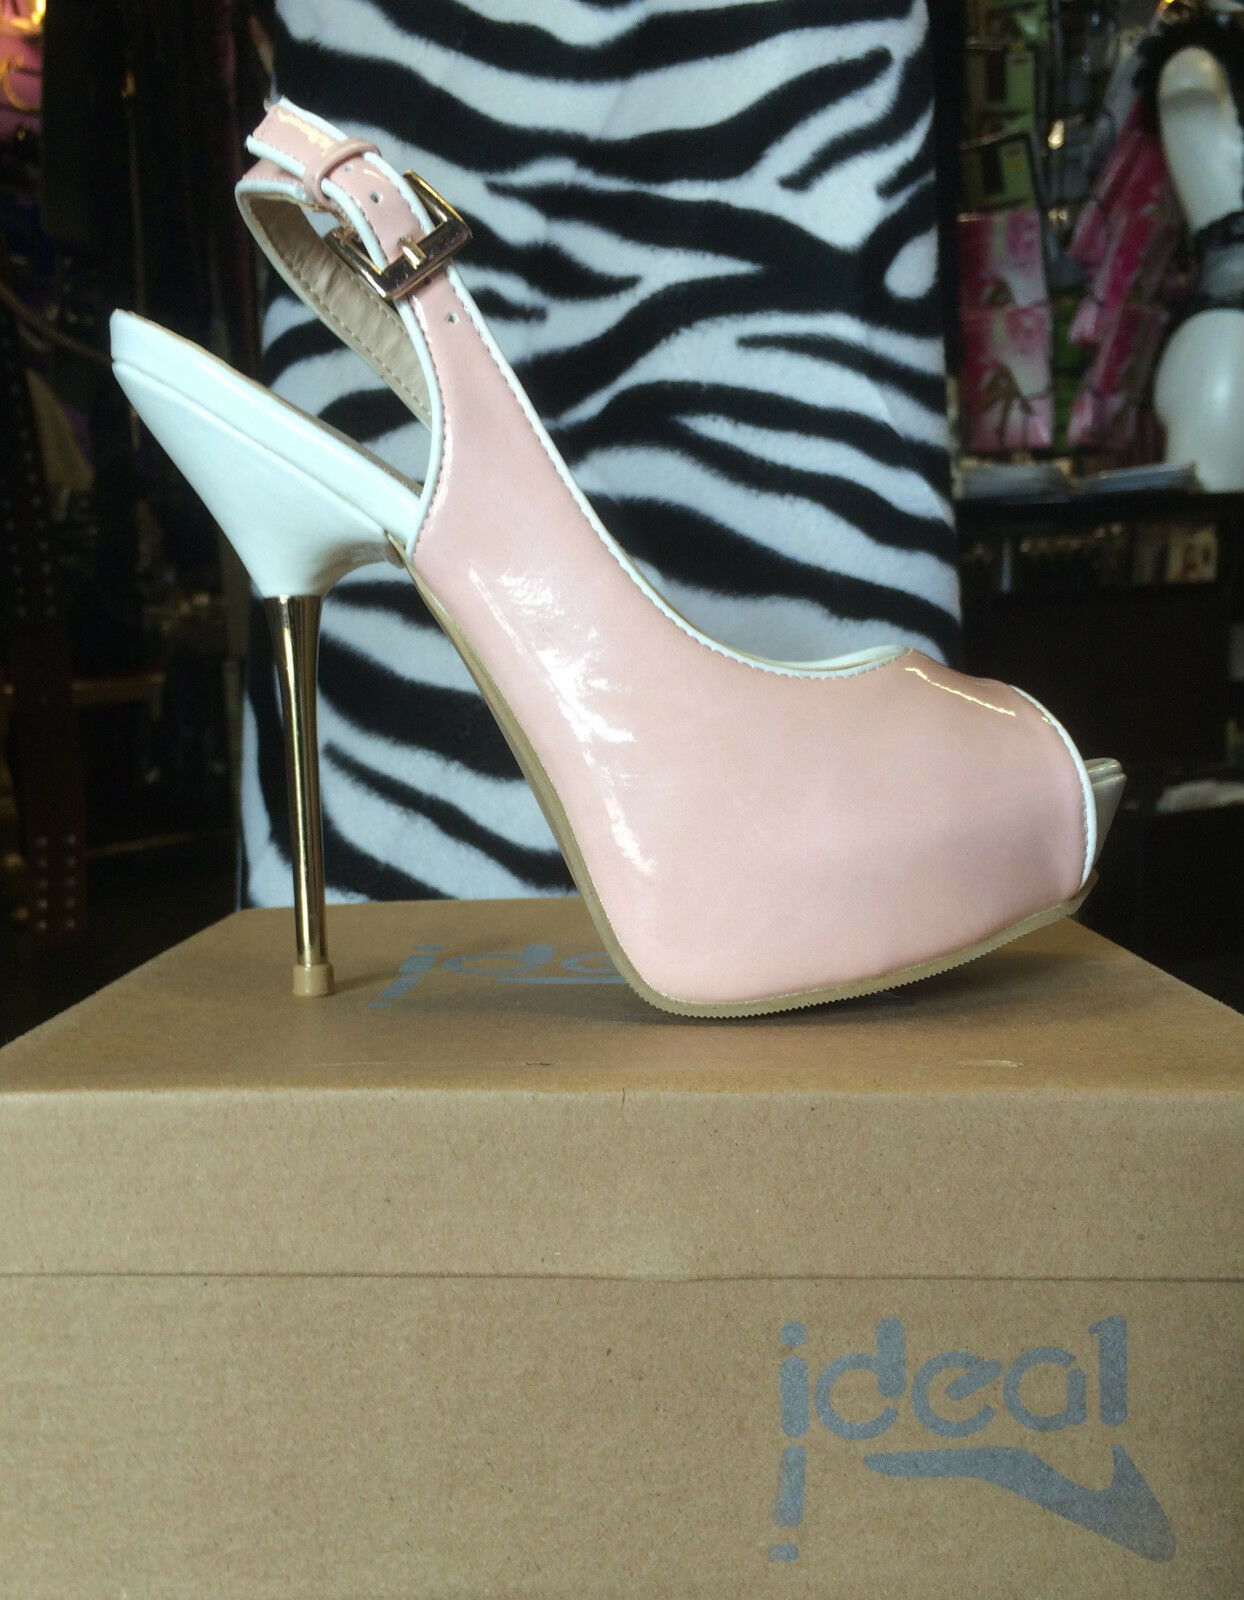 *MADE IN CHELSEA* Designer Baby Pink Peep-Toe Slingback Stiletto Strappy Heels